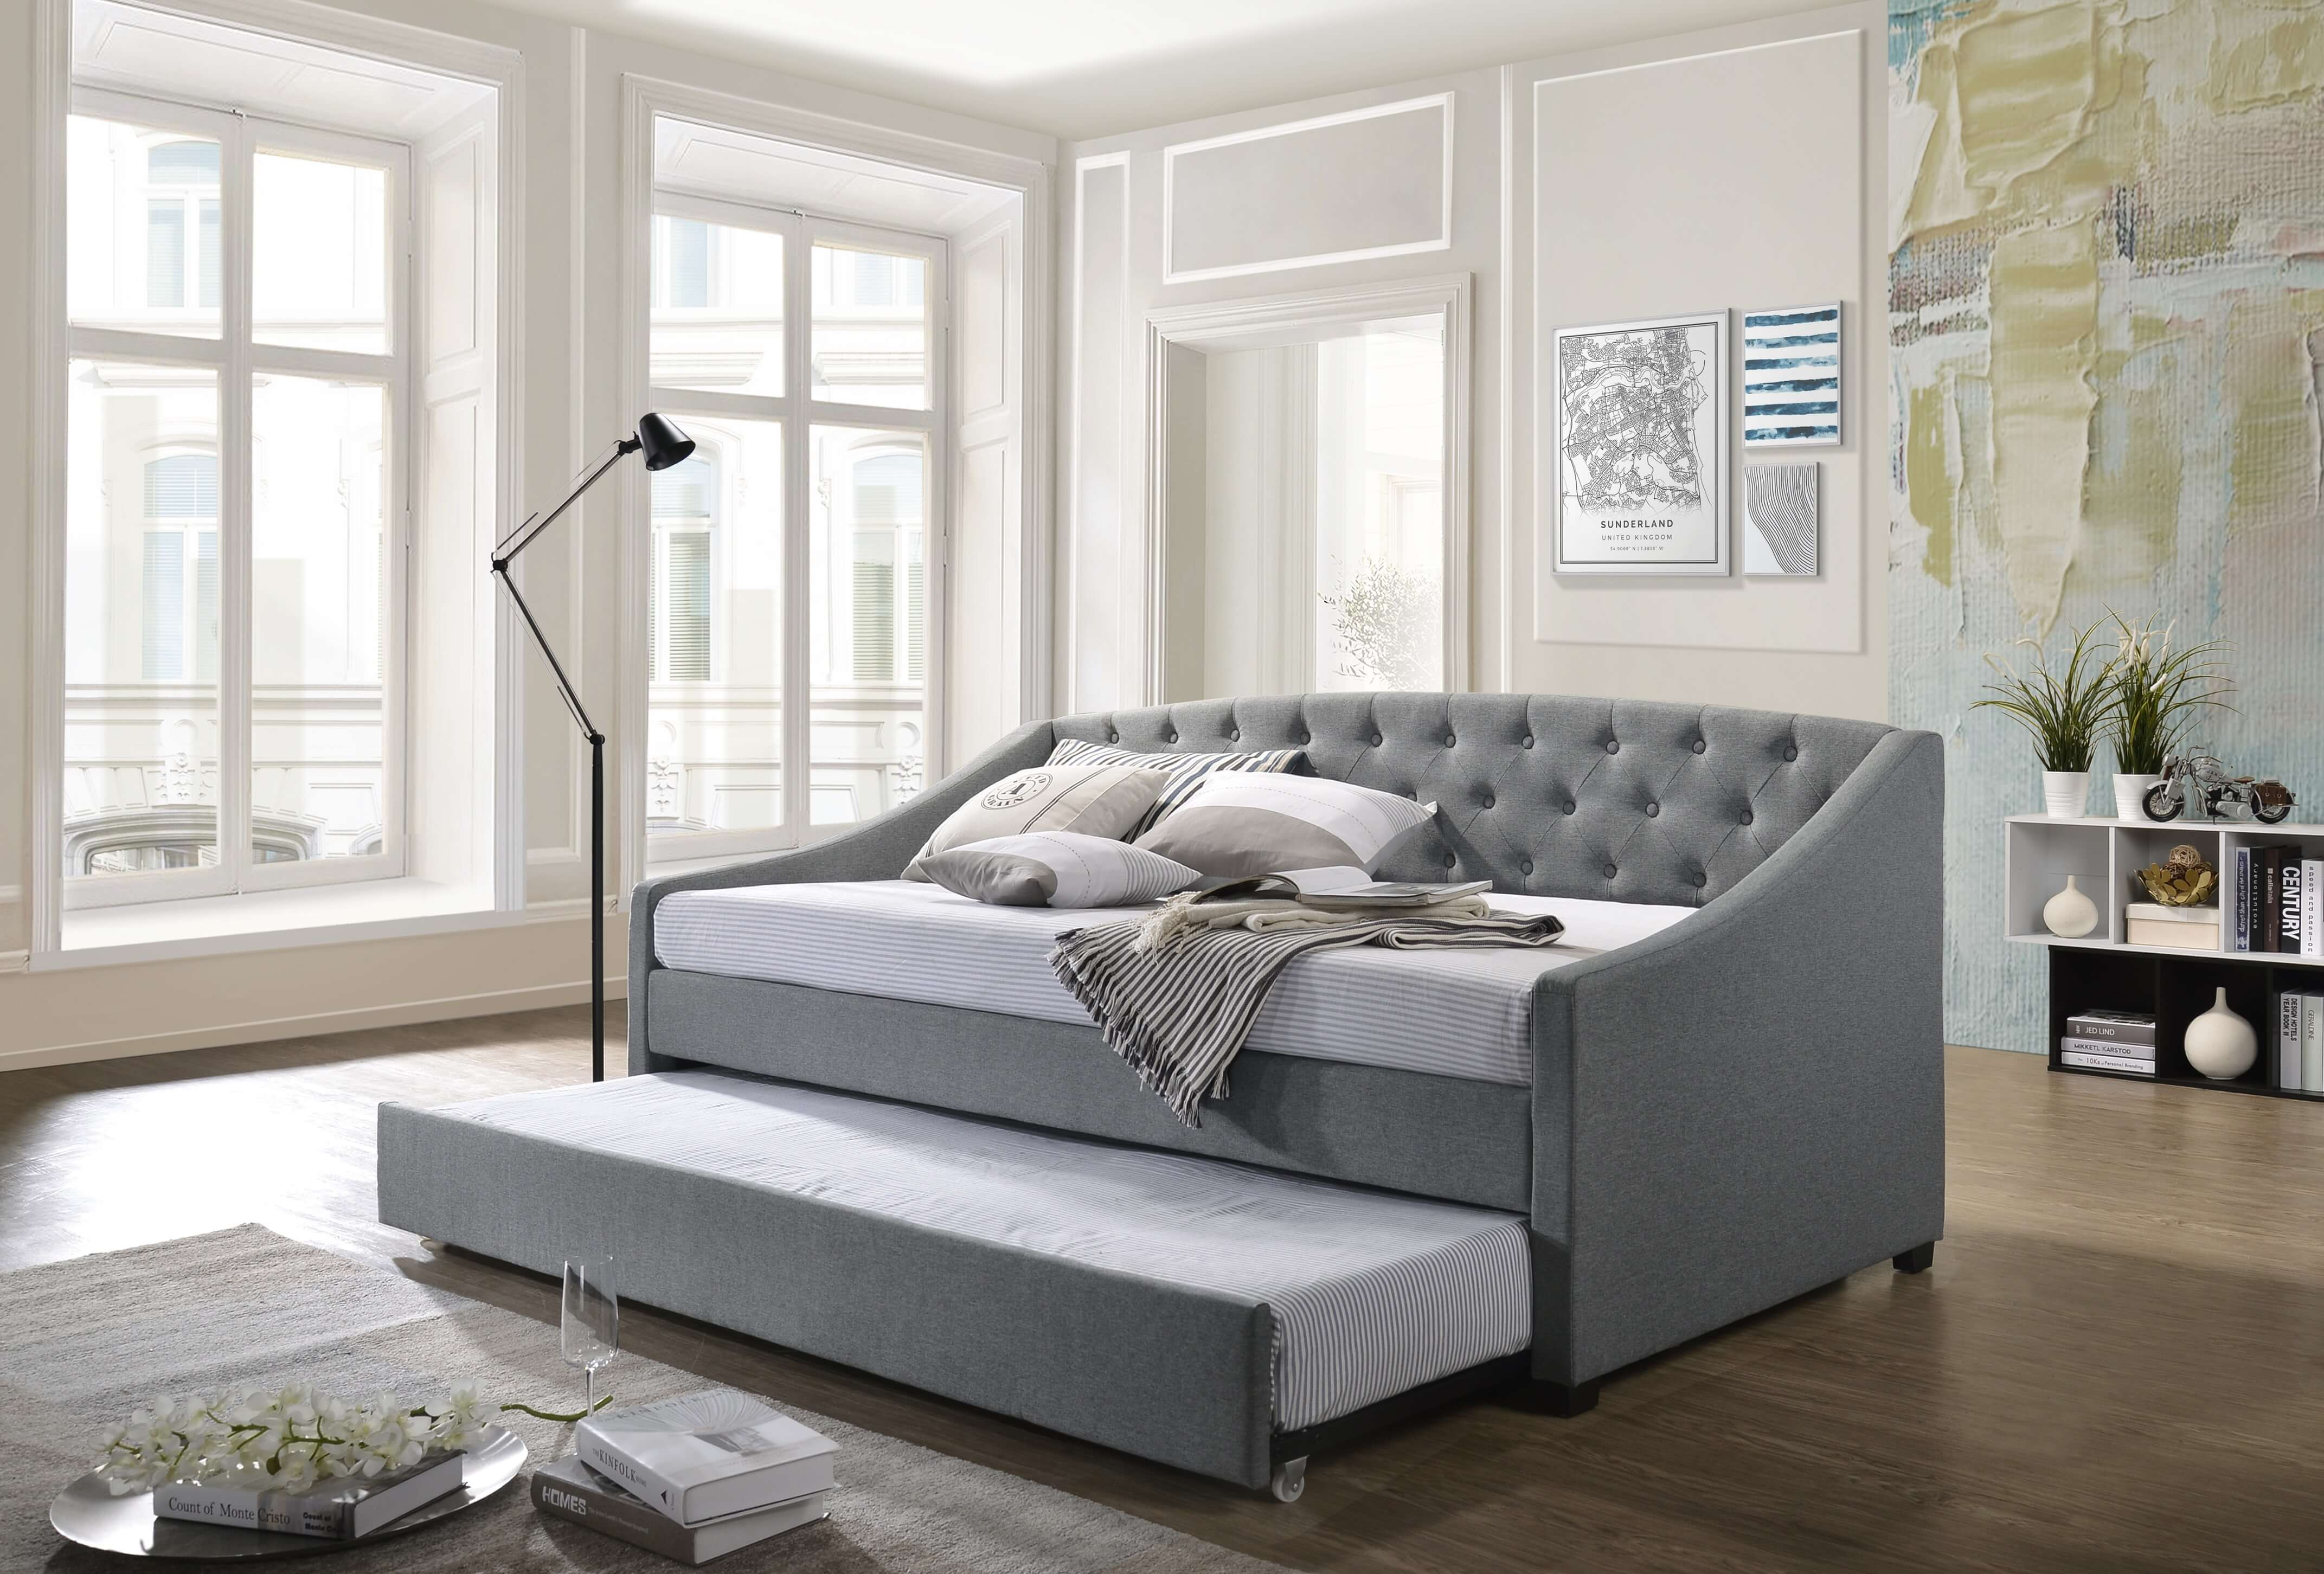 Olsen Daybed With Trundle Bed Frame Fabric Upholstery Sofa Single Size Mattress 747501892153 Ebay